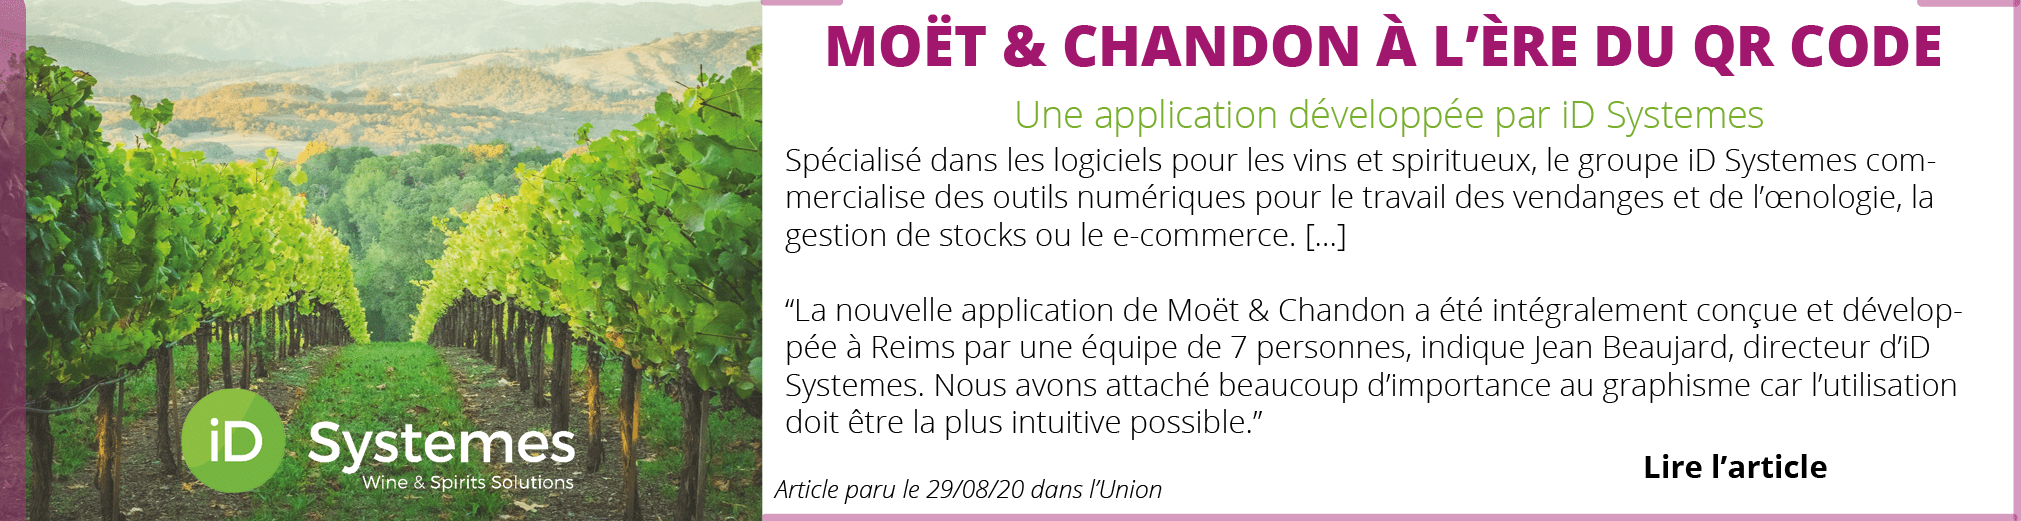 moet-chandon-idsystesmes